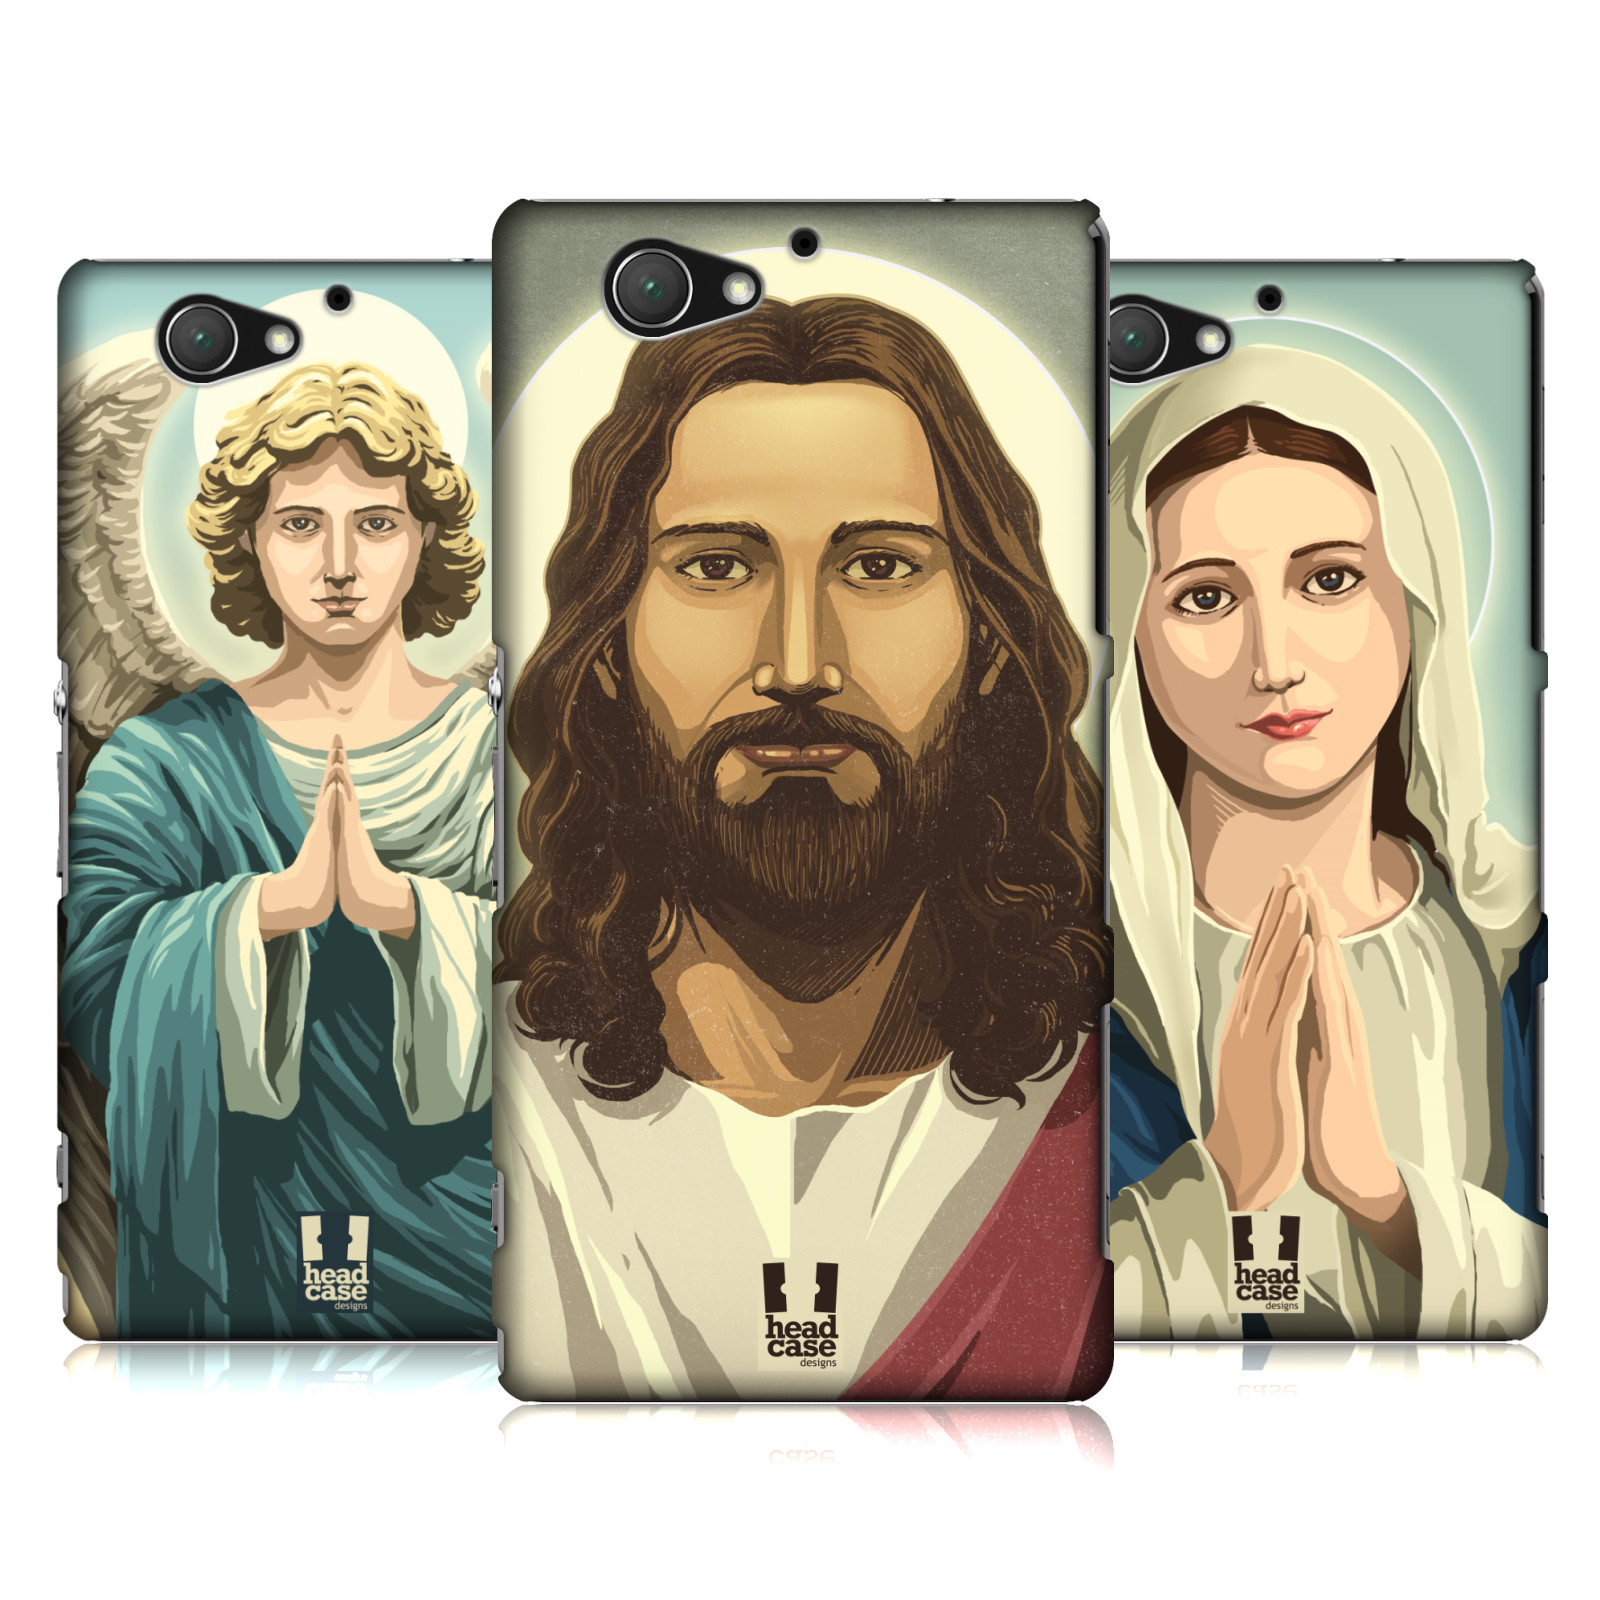 HEAD-CASE-DESIGNS-RELIGIOSEN-PORTRATS-RUCKSEITE-HULLE-FUR-SONY-HANDYS-4